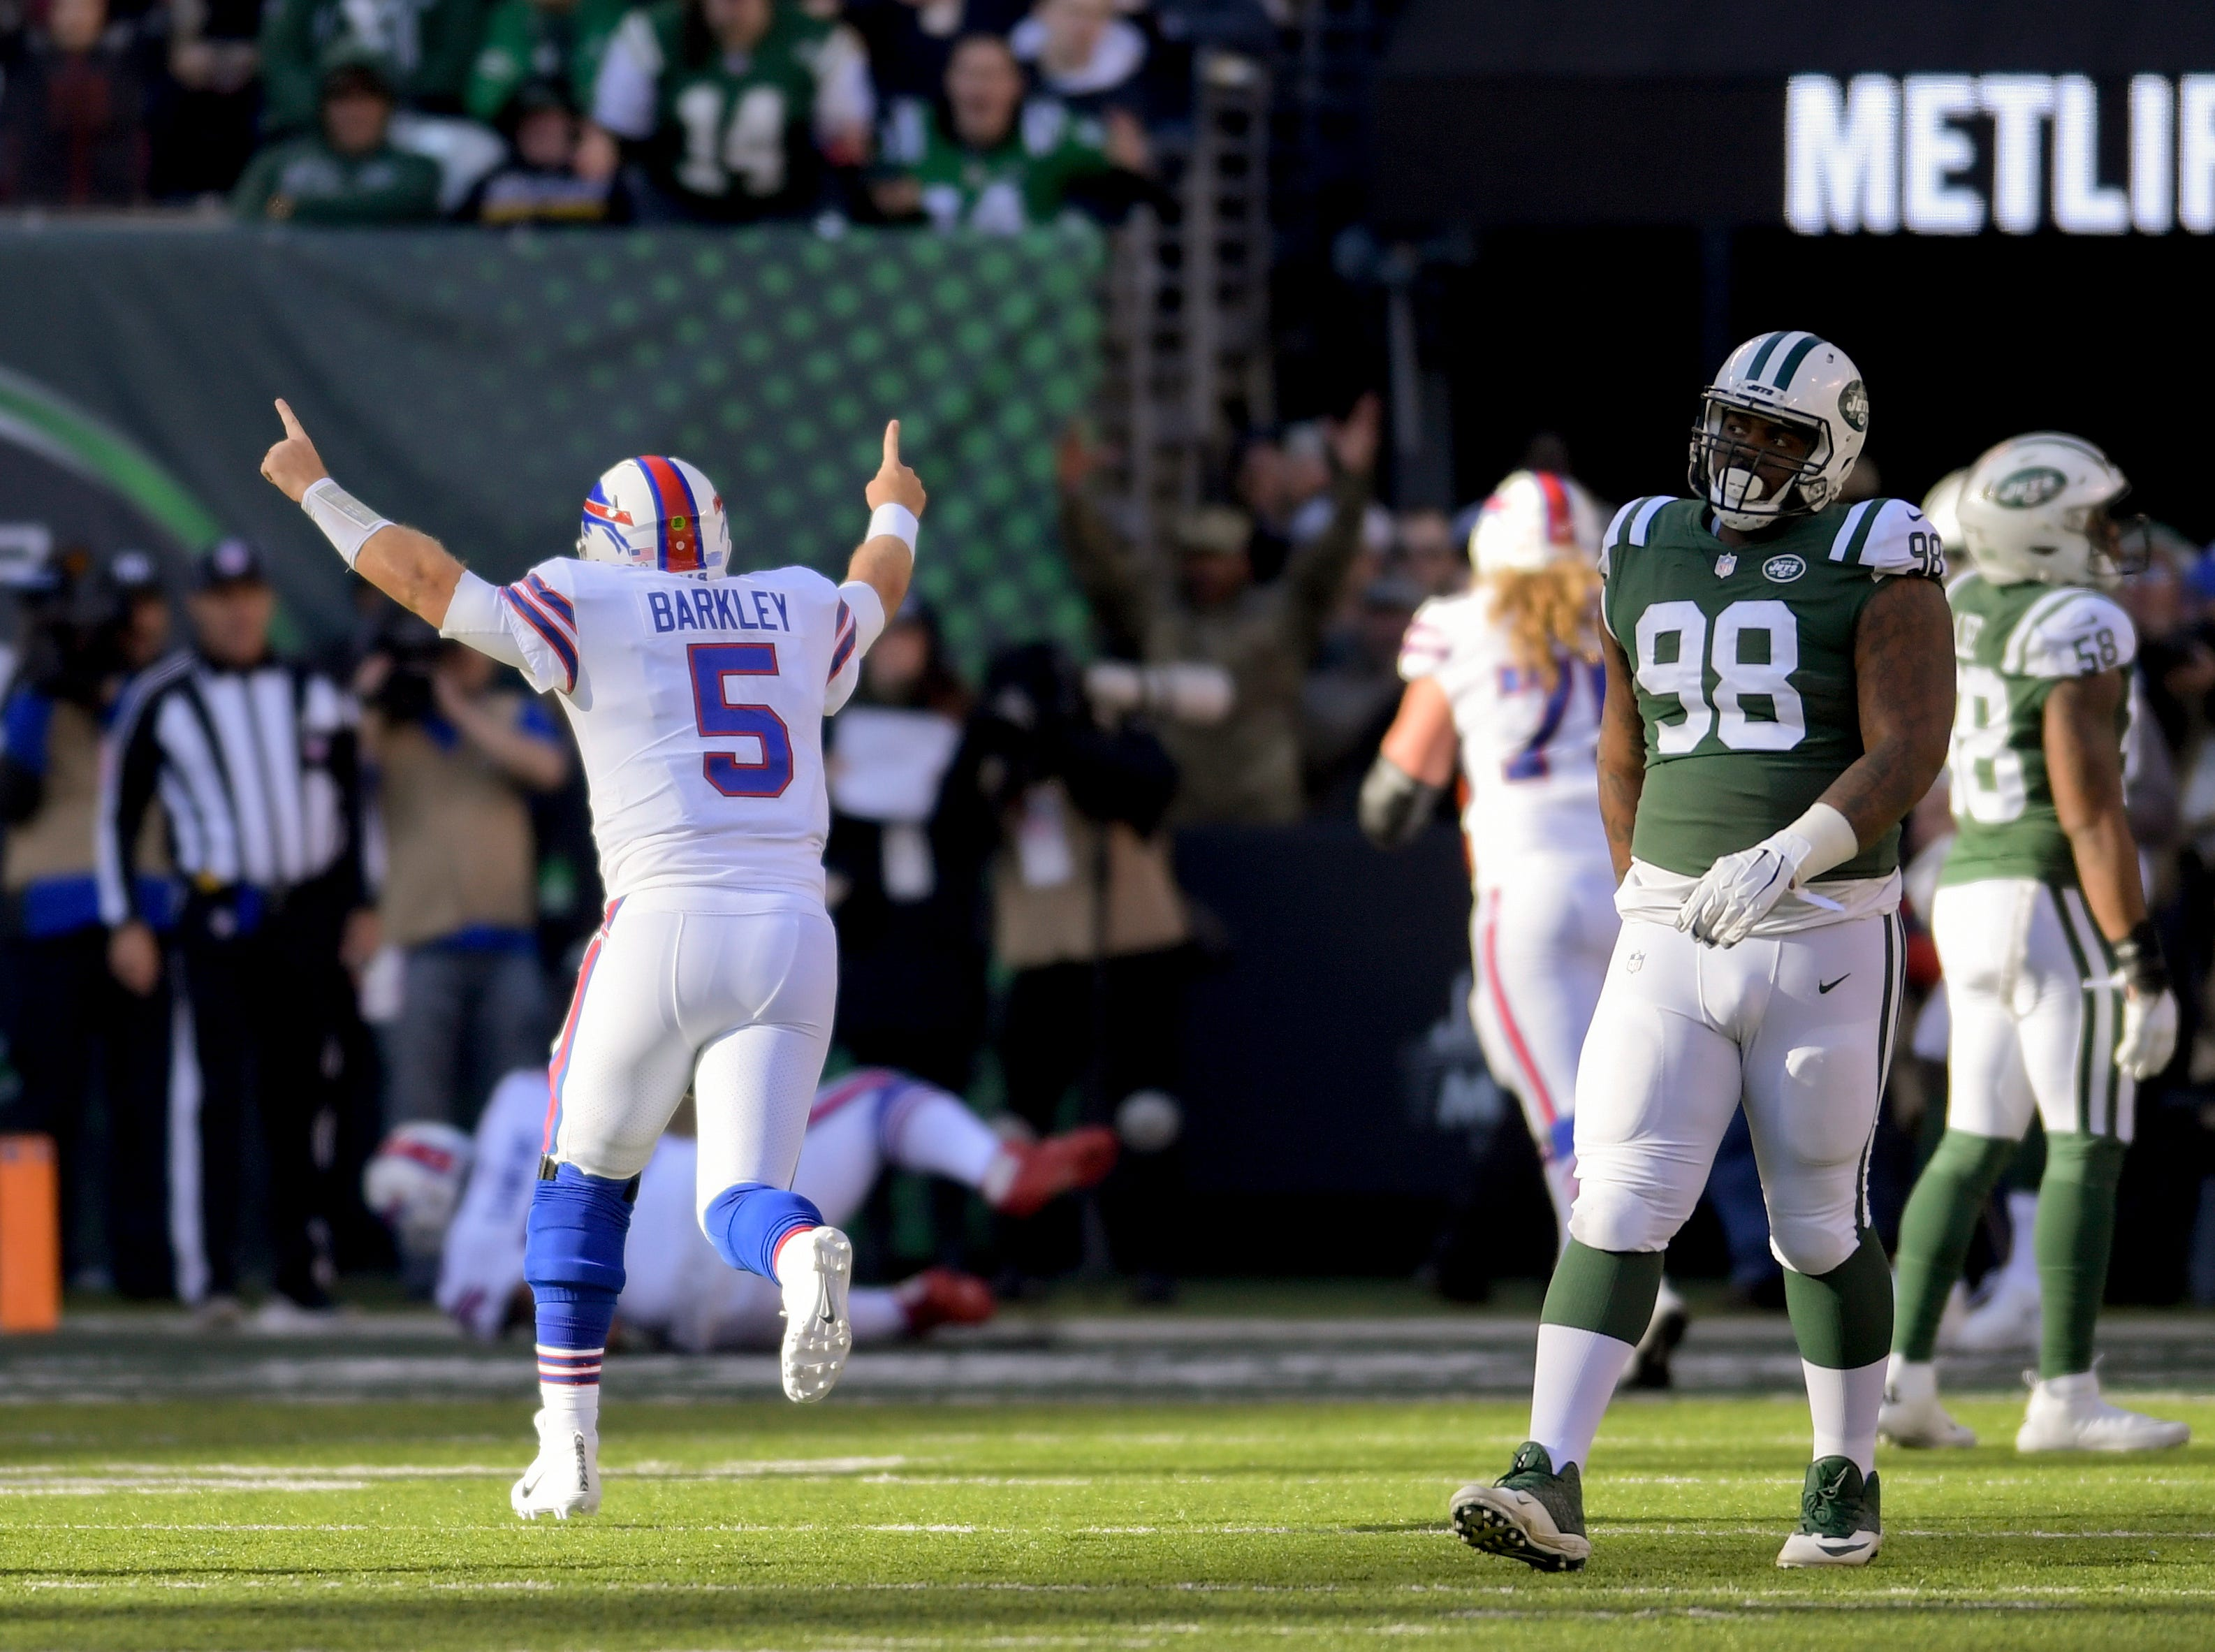 Buffalo Bills quarterback Matt Barkley (5) celebrates after a touchdown against the New York Jets during the second quarter of an NFL football game, Sunday, Nov. 11, 2018, in East Rutherford, N.J. (AP Photo/Bill Kostroun)